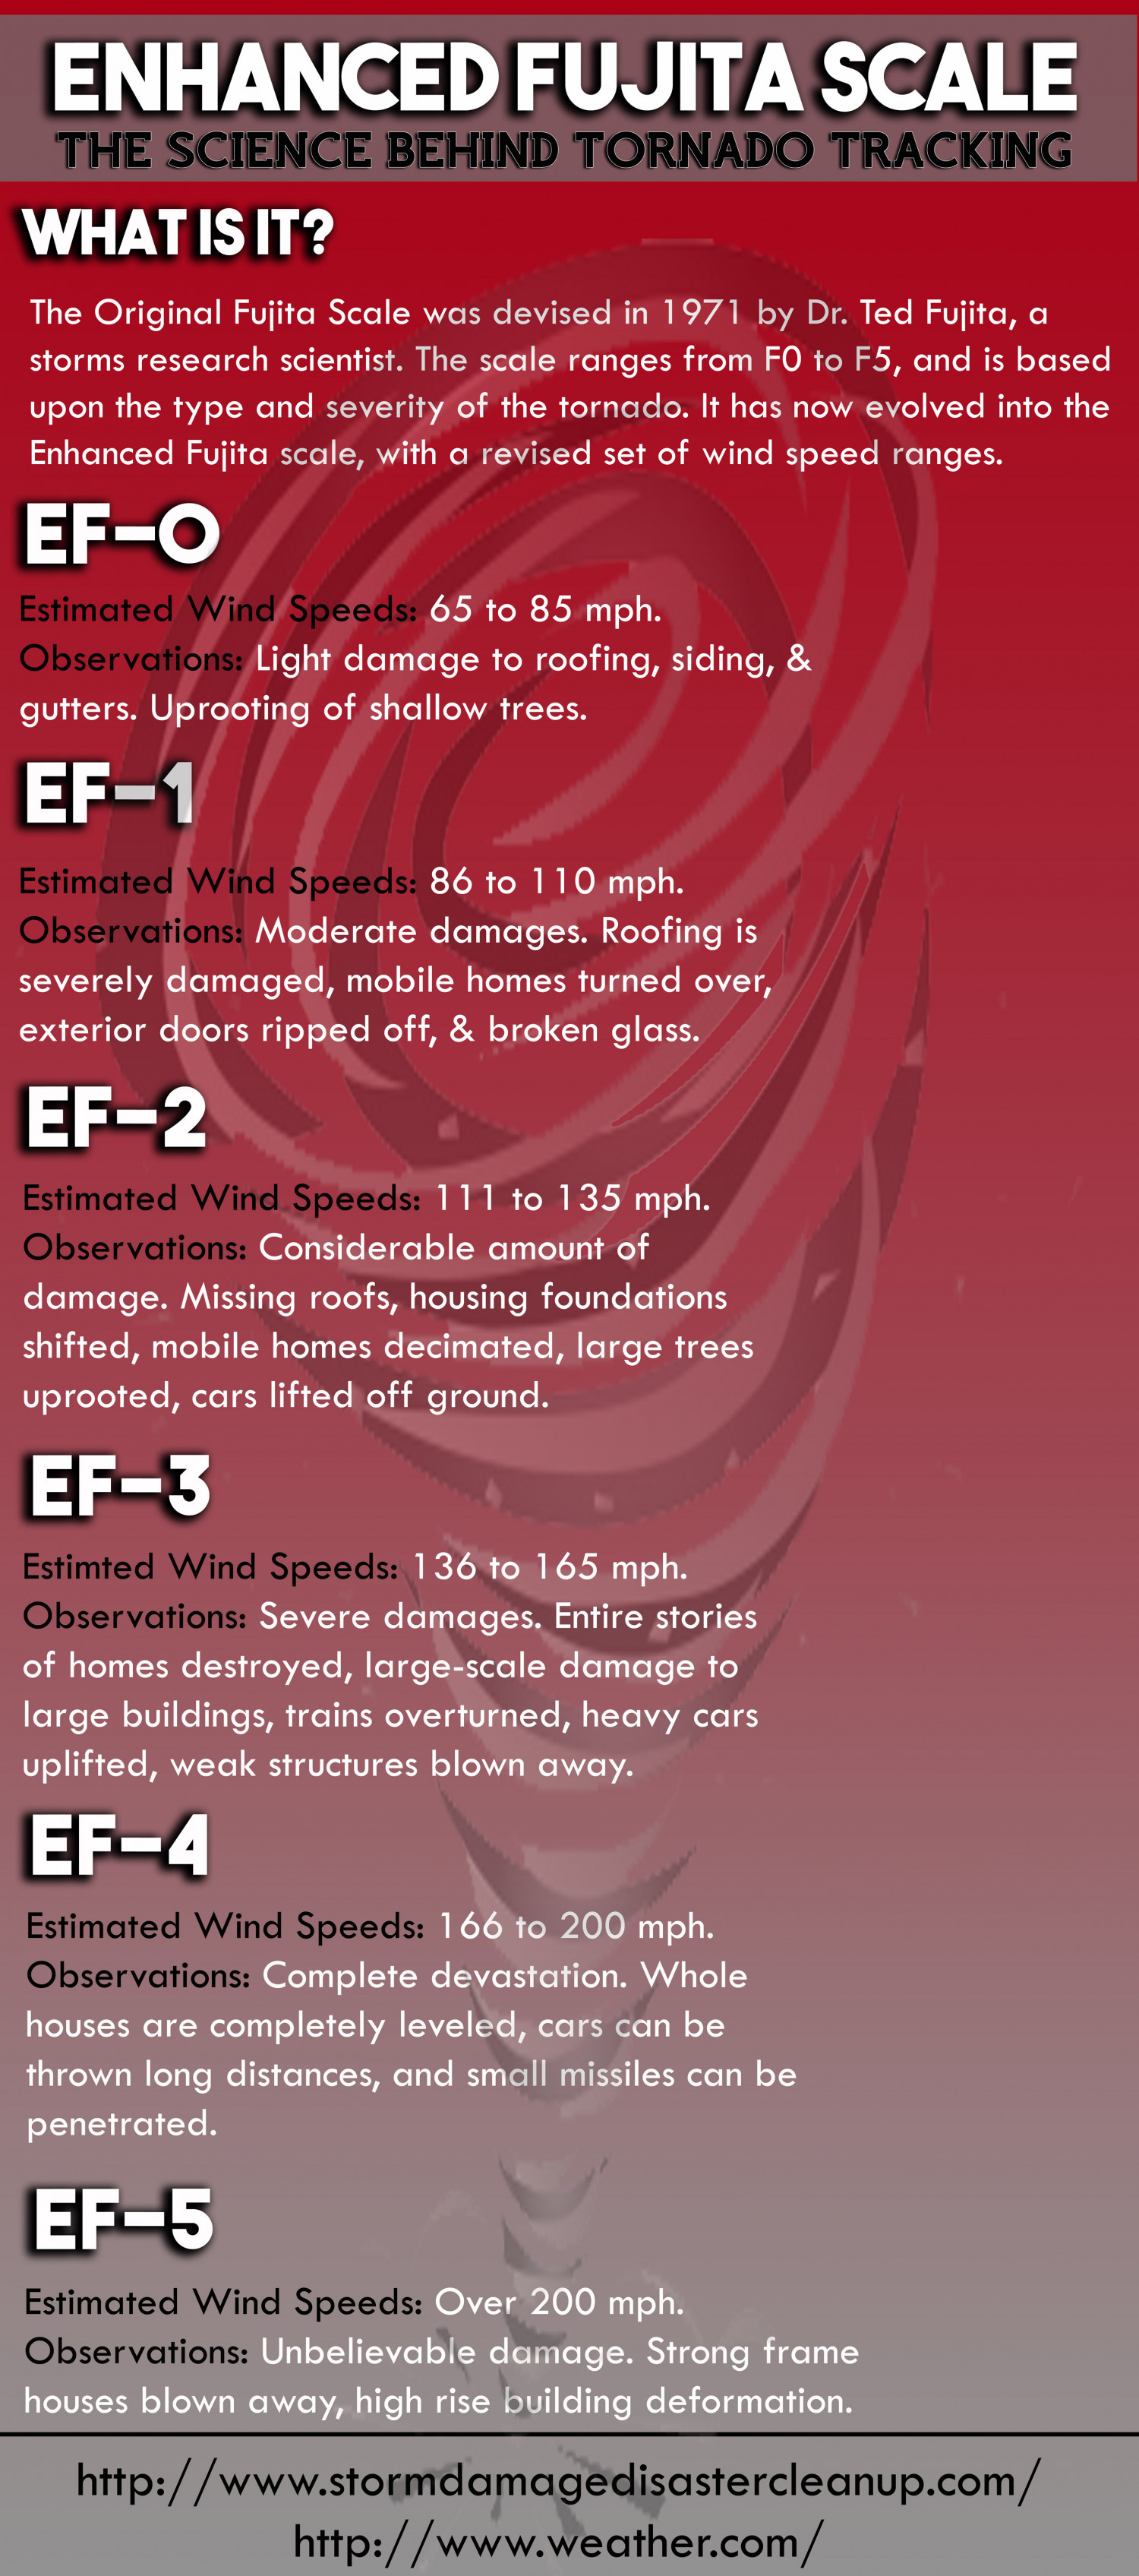 The Enhanced Fujita Scale - What Is It? Infographic